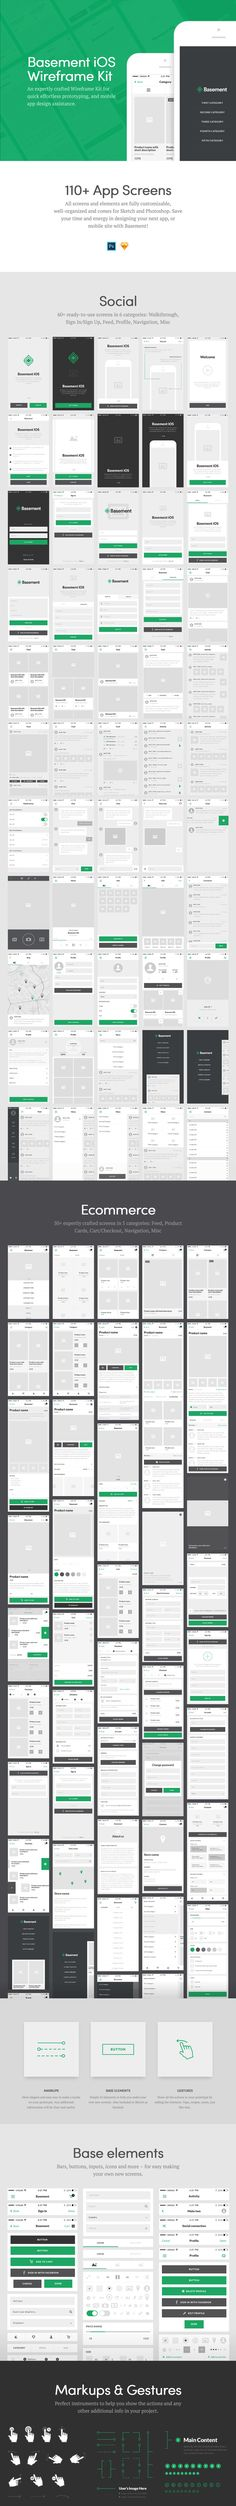 Basement iOS on Market (http://market.designmodo.com/basement-ios/)